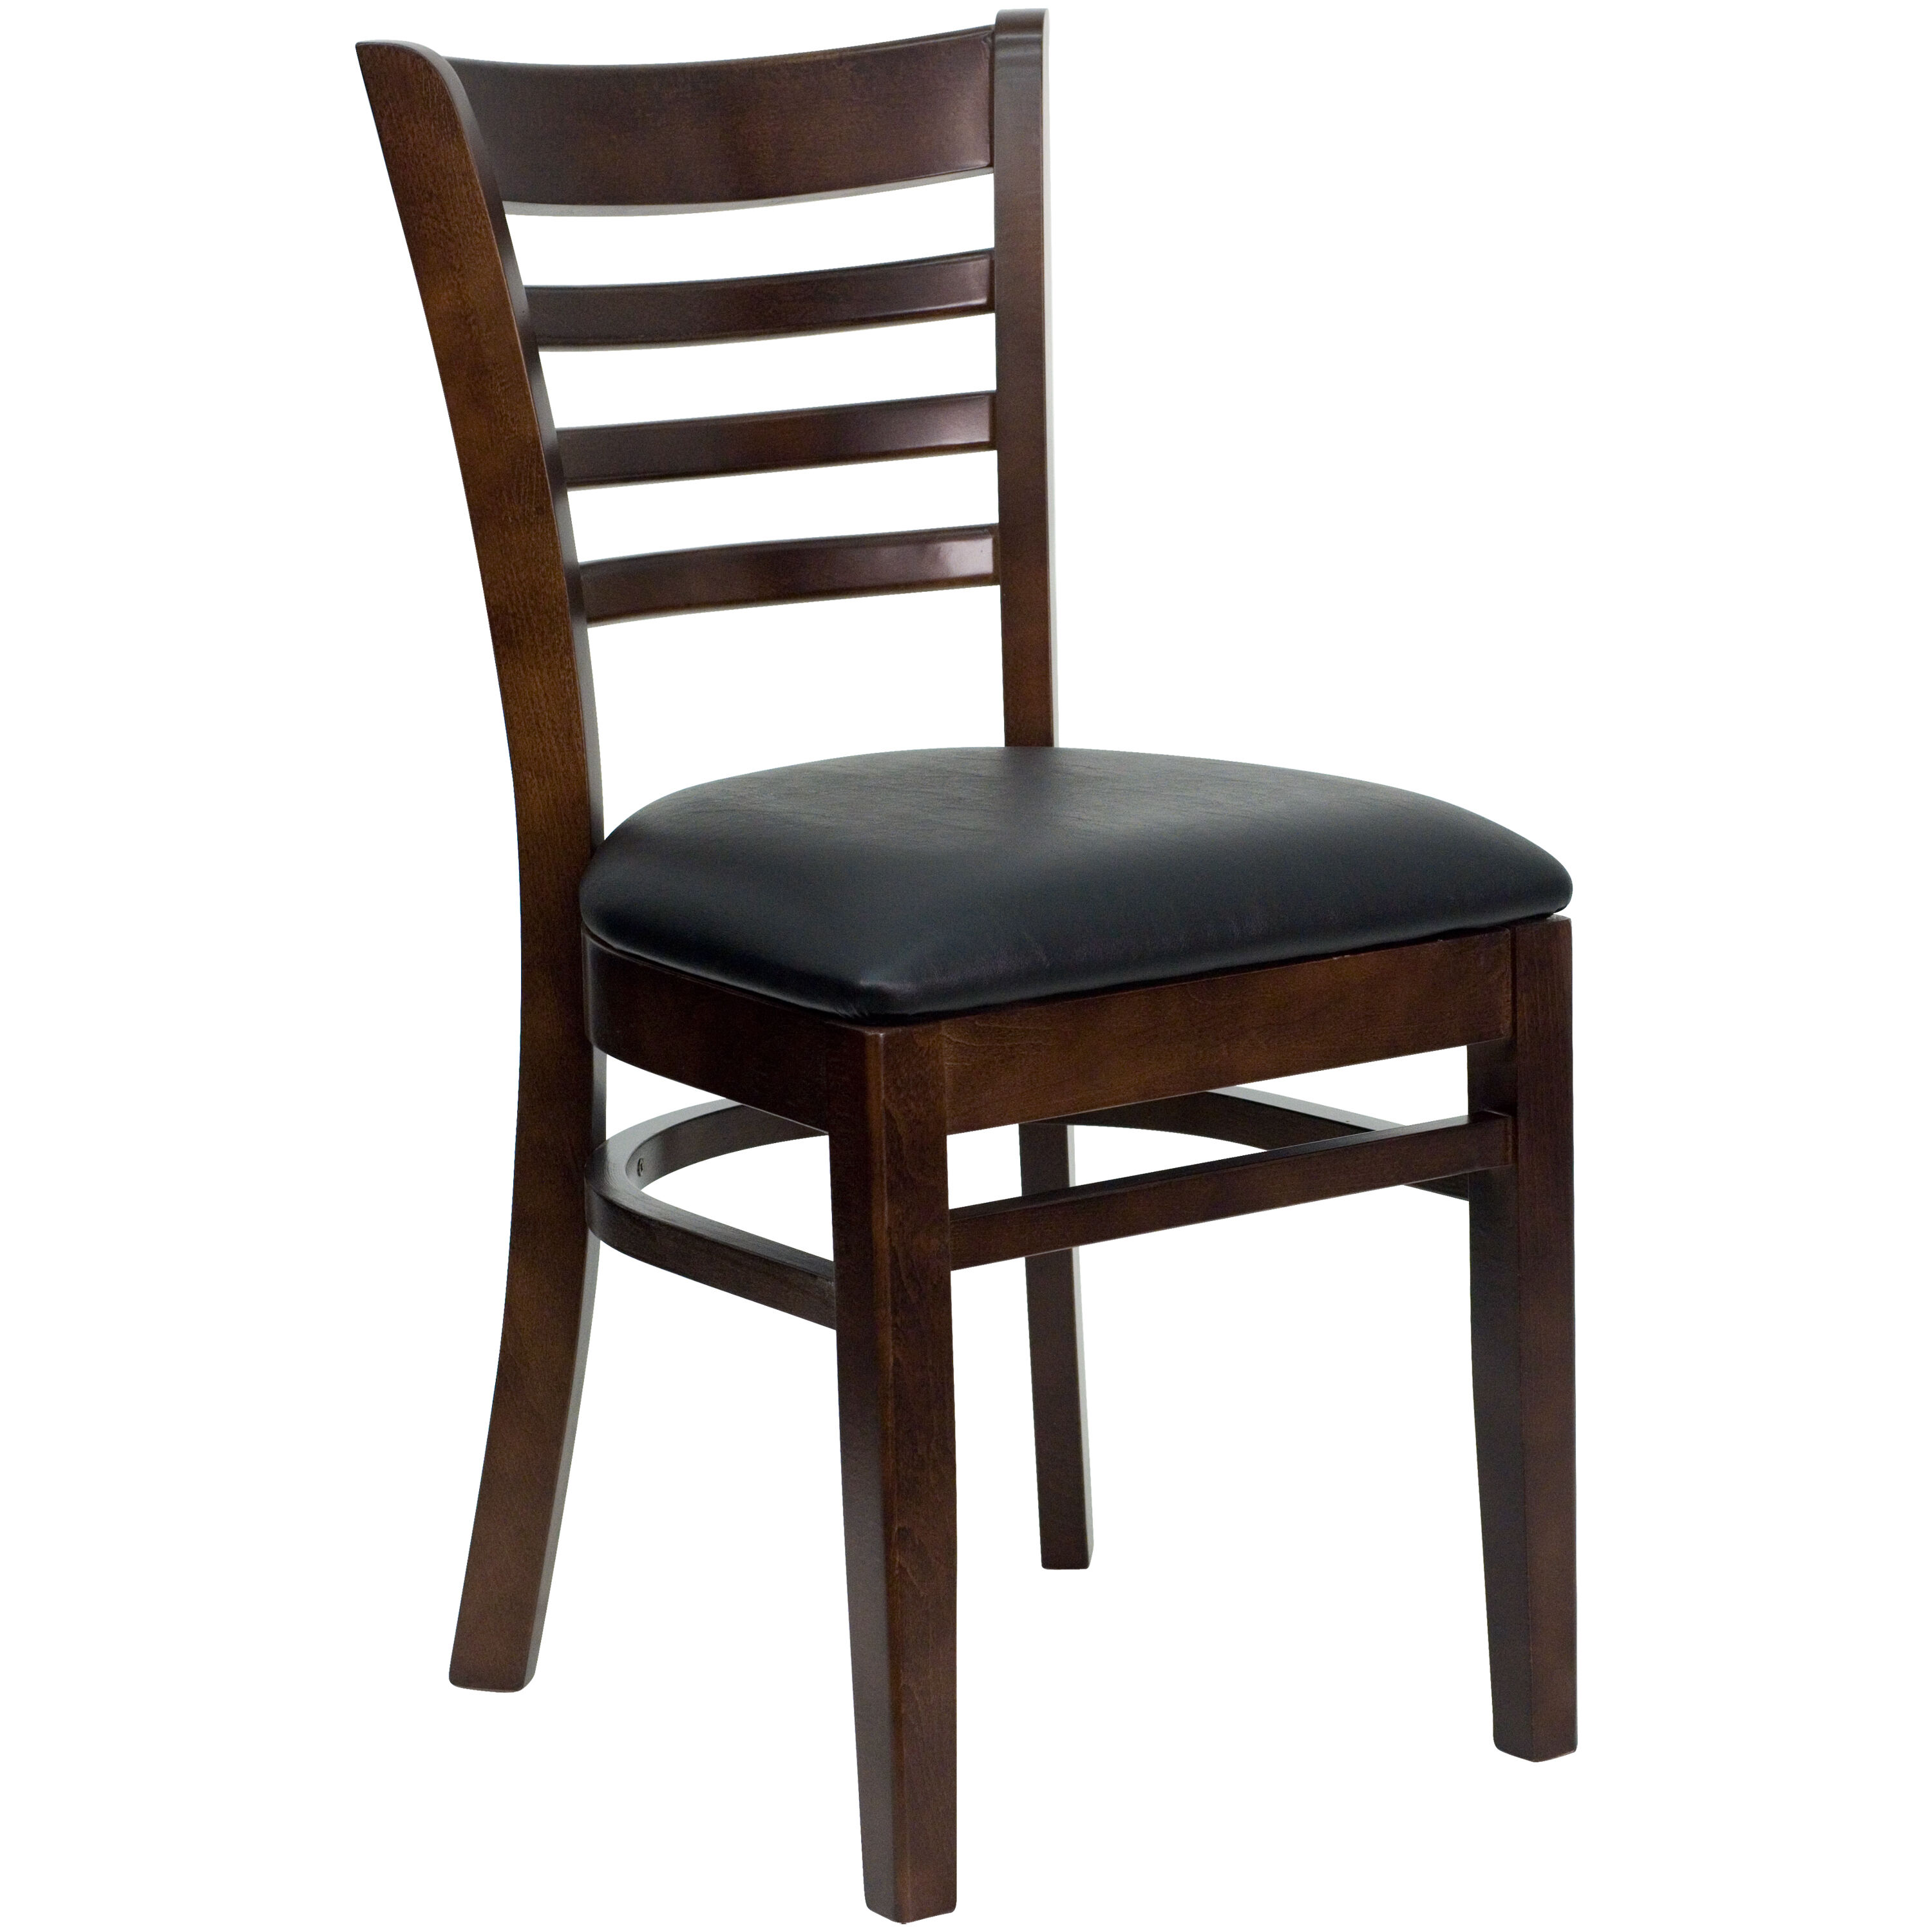 Restaurant Furniture For Less Restaurantfurniture4less Wood Chairs